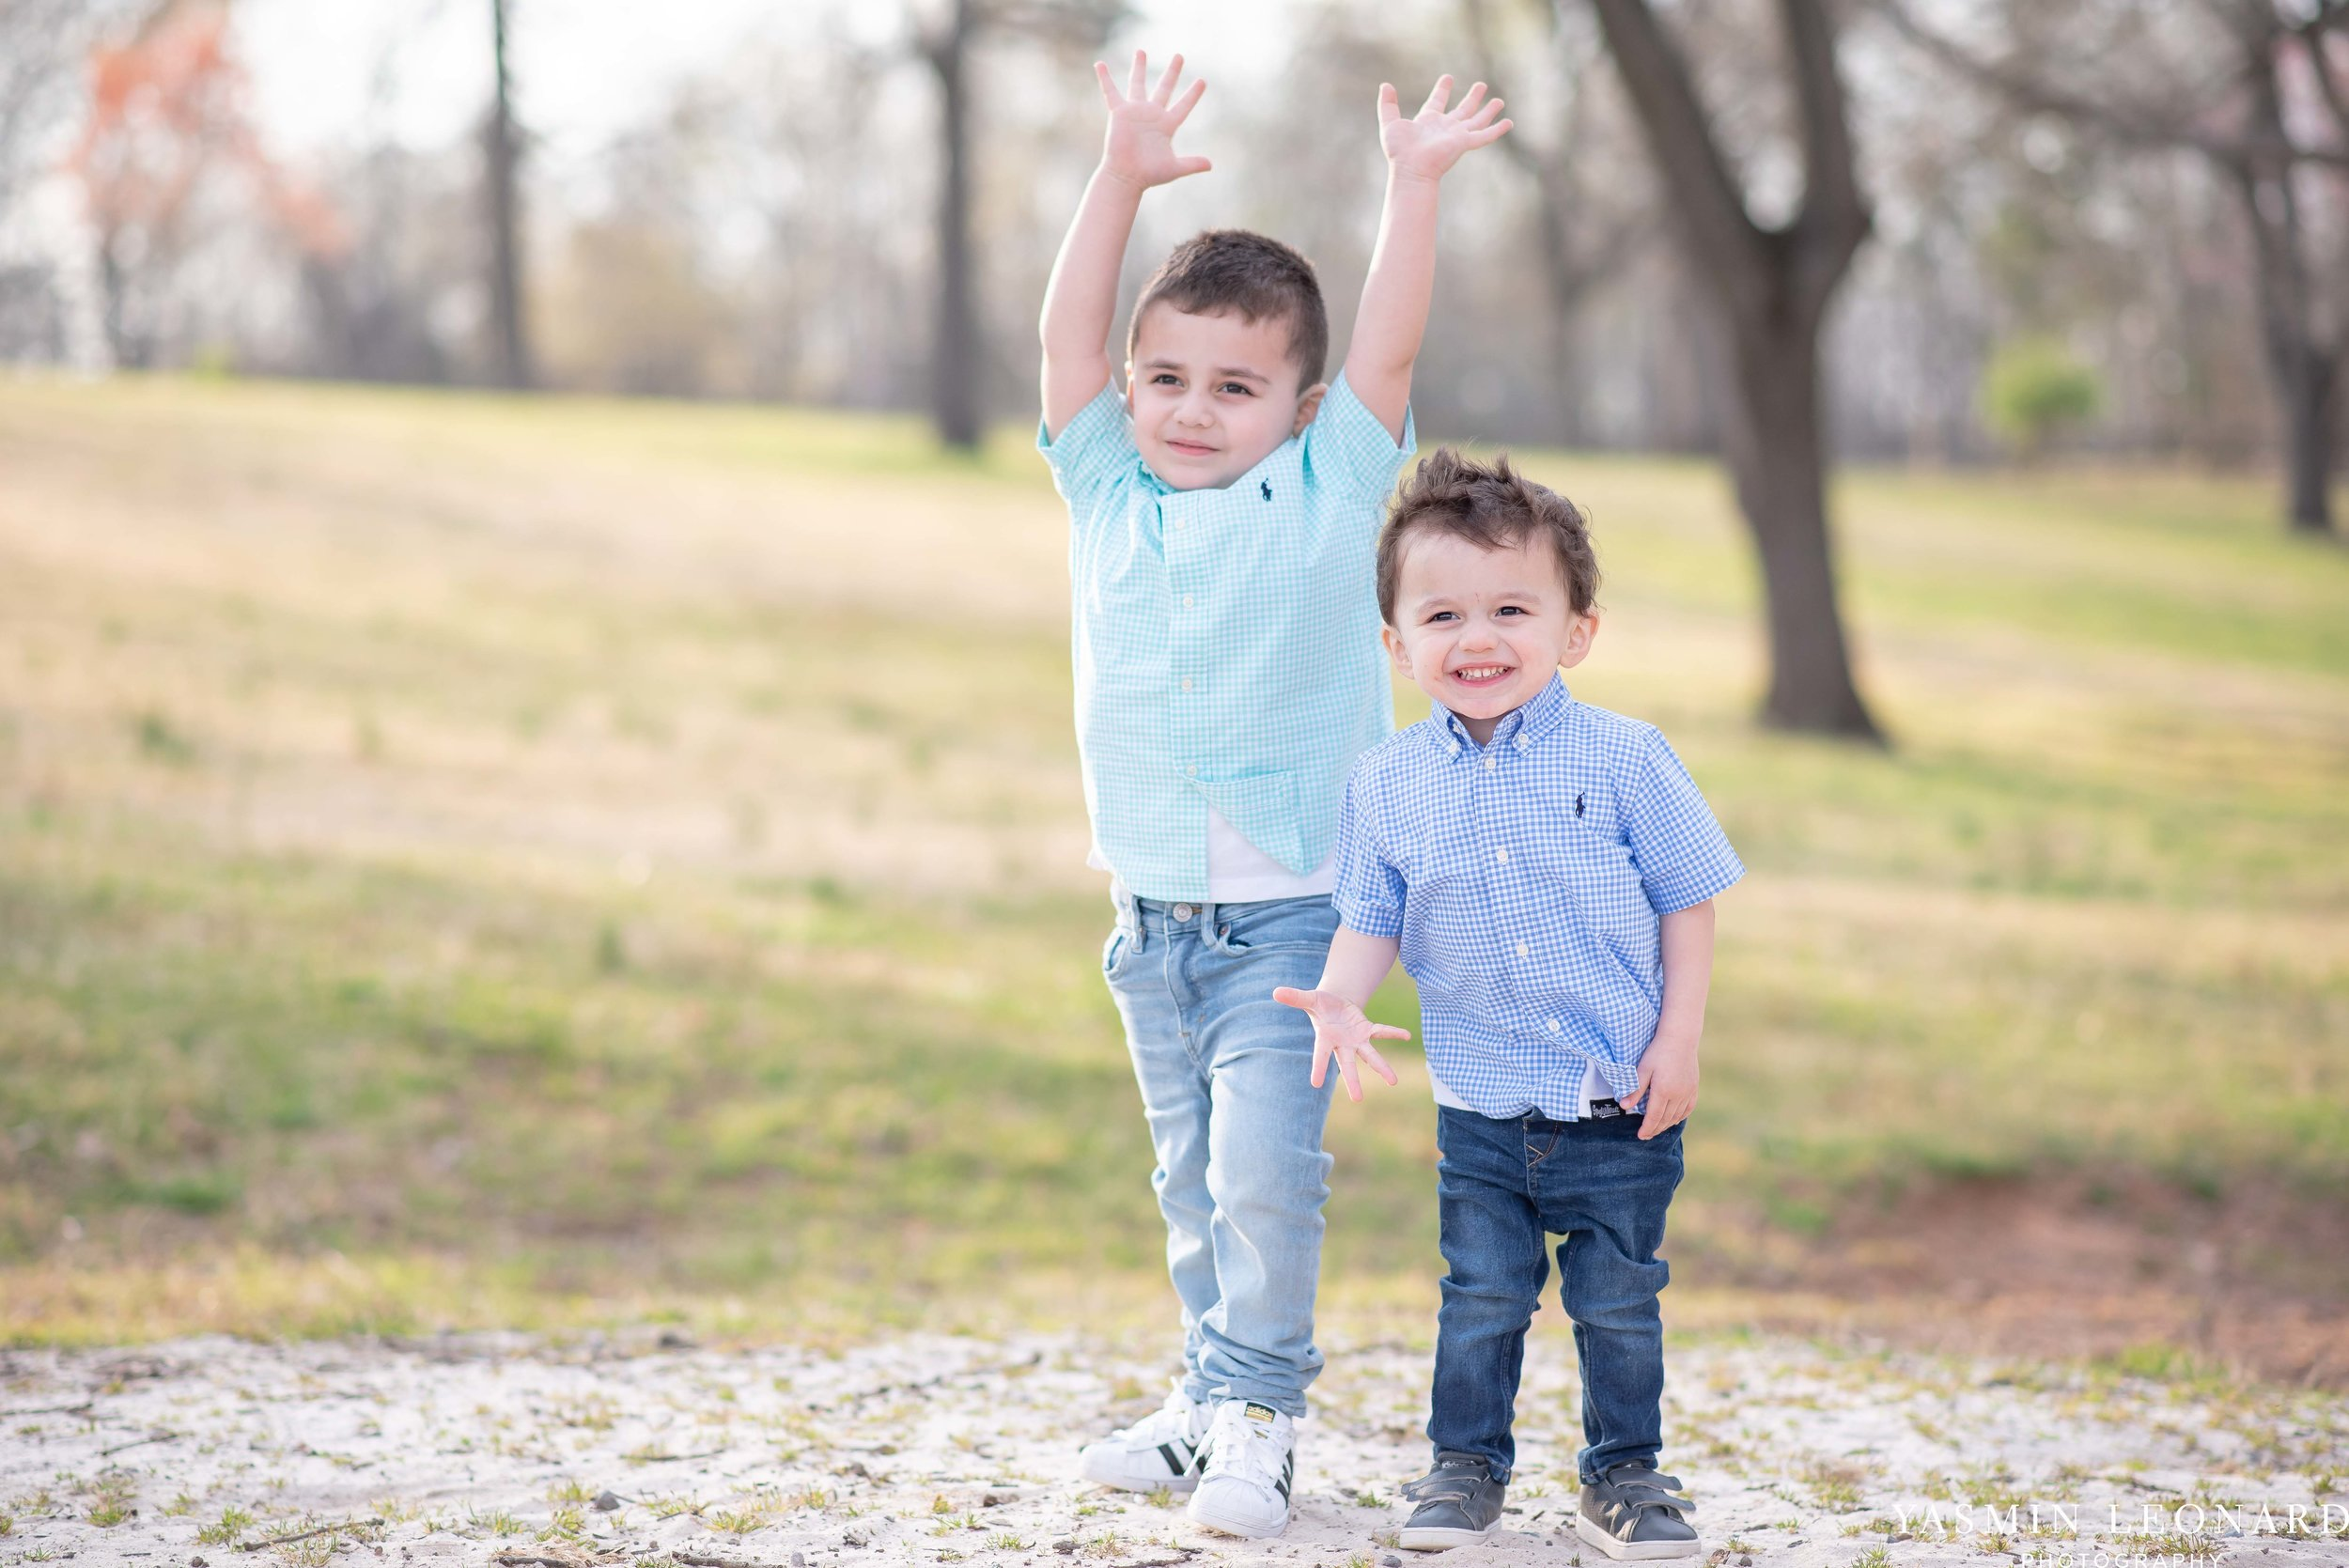 Family Portraits - Family Session - Unique Family Portraits - Family Portrait Ideas with Kids - High Point Family Portraits - Spring Picture Ideas - Kids Picture Ideas - Toddler Picture Ideas - Yasmin Leonard Photography-12.jpg